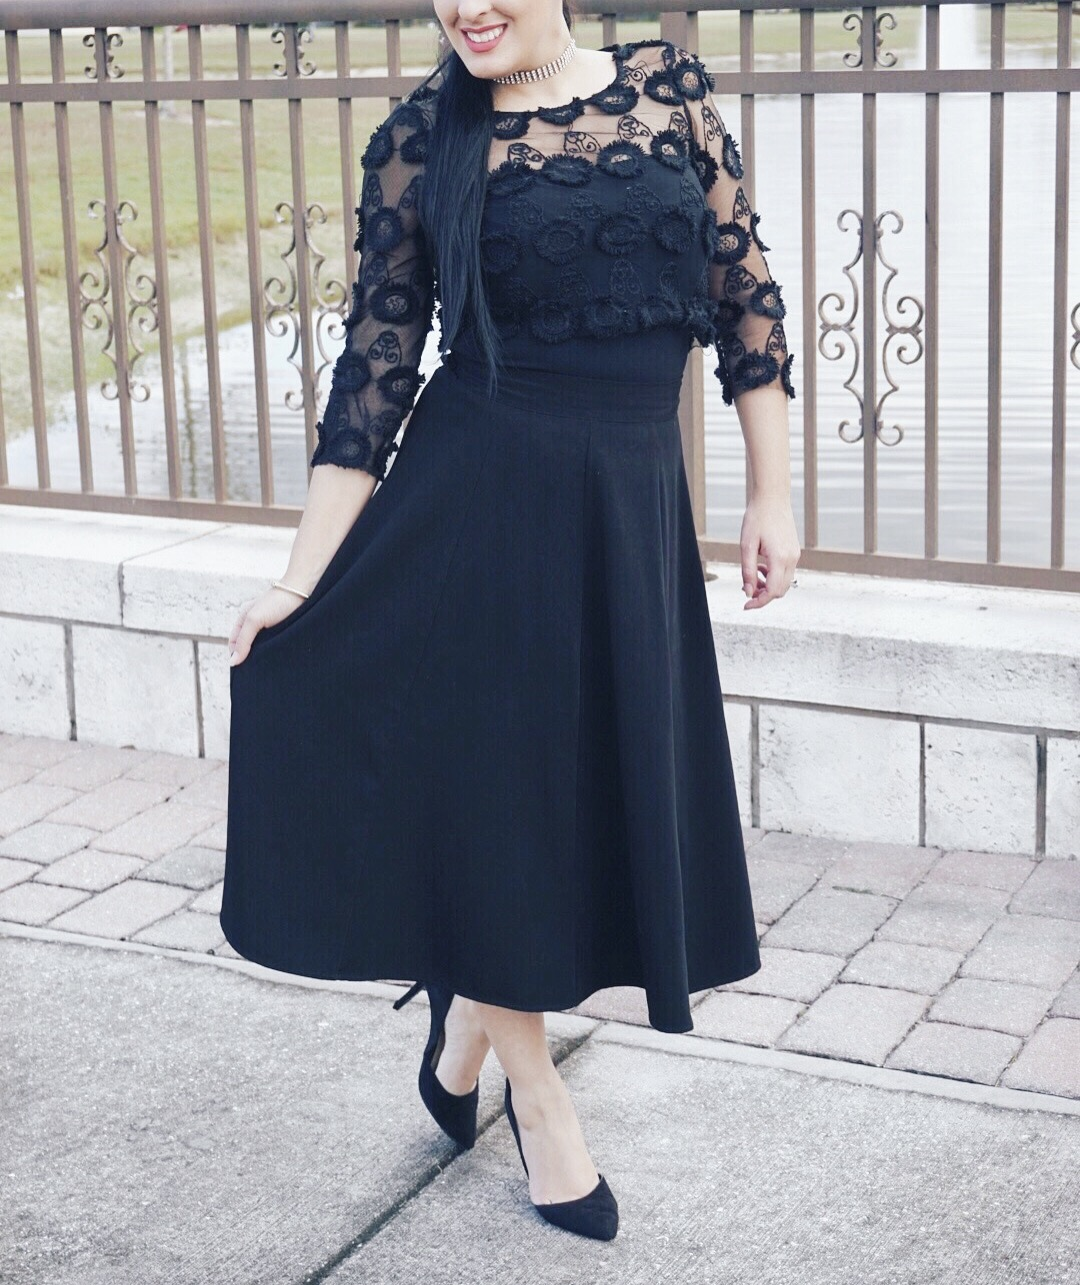 Embroidery-Details-All-Black-Everything-OOTD-Vivi-Brizuela-PinkOrchidMakeup